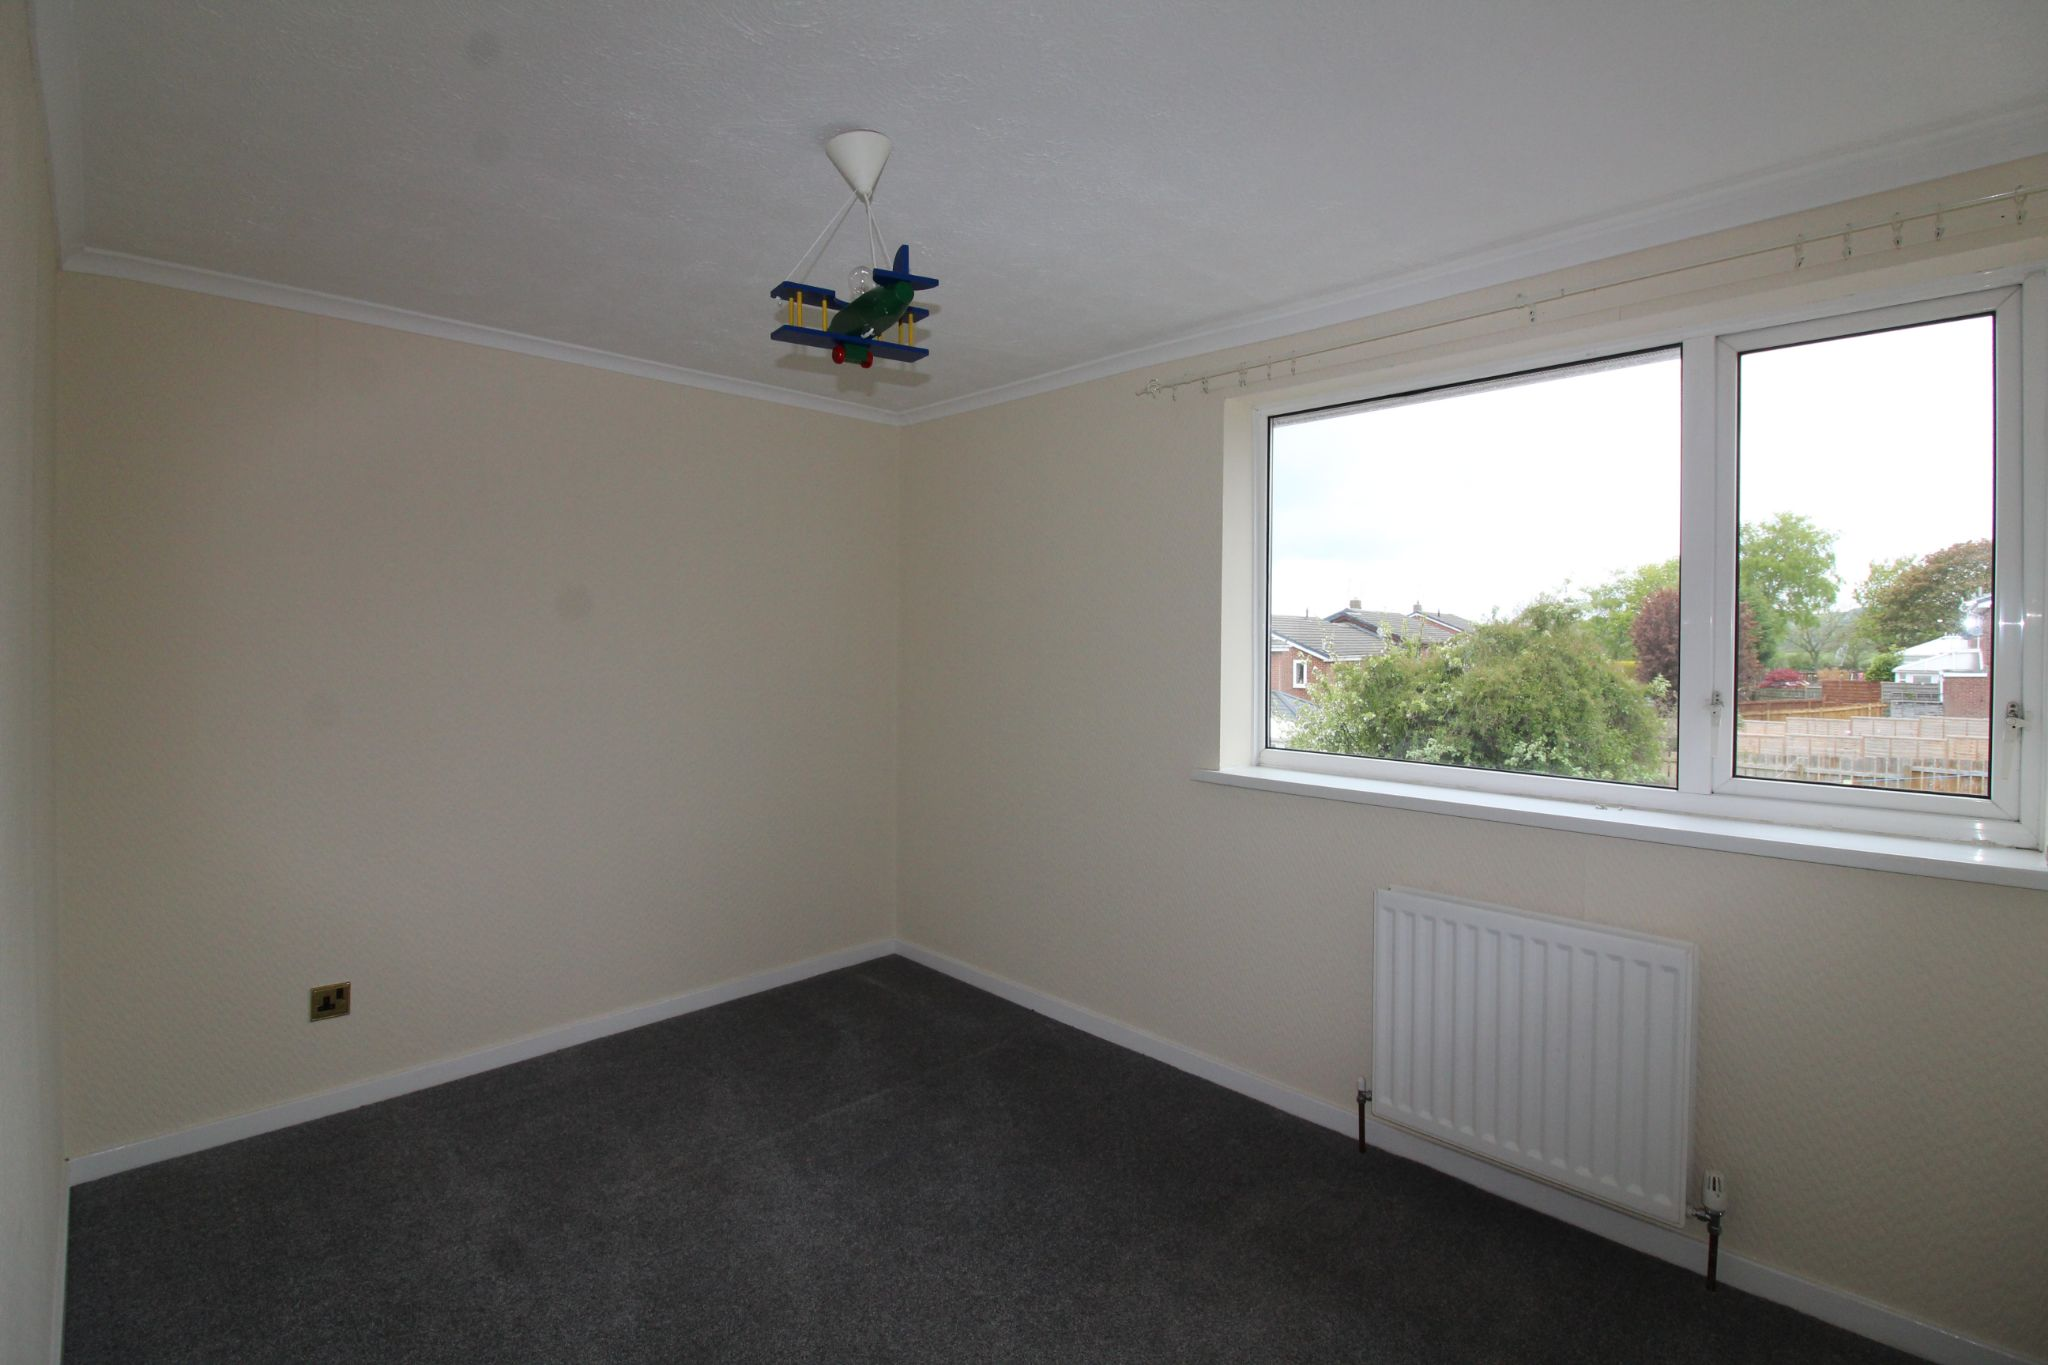 2 bedroom mid terraced house For Sale in Durham - Photograph 8.